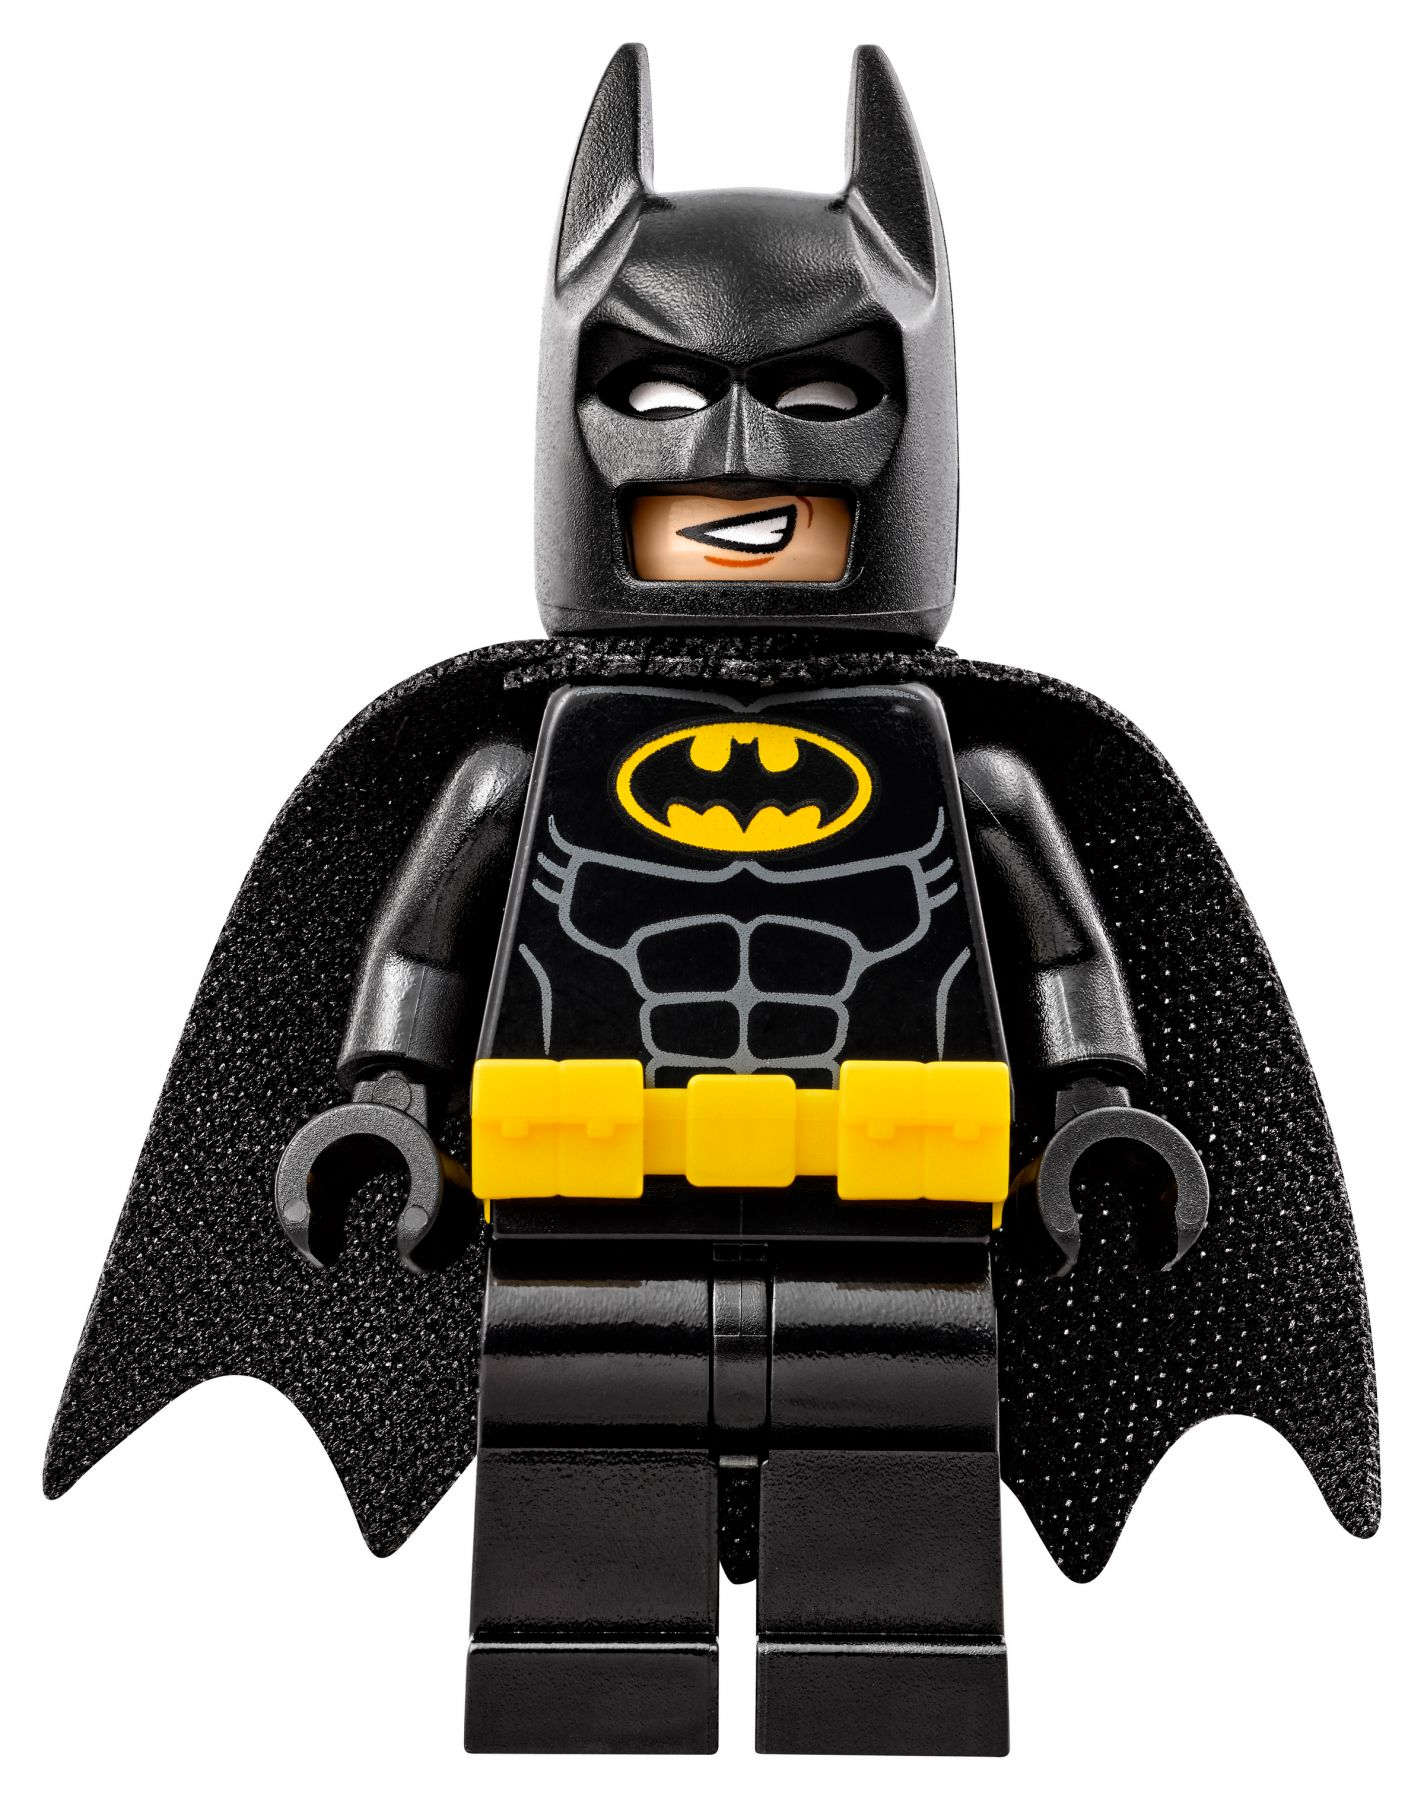 LEGO The LEGO Batman Movie 70904 Clayface™: Matsch-Attacke LEGO_70904_alt8.jpg